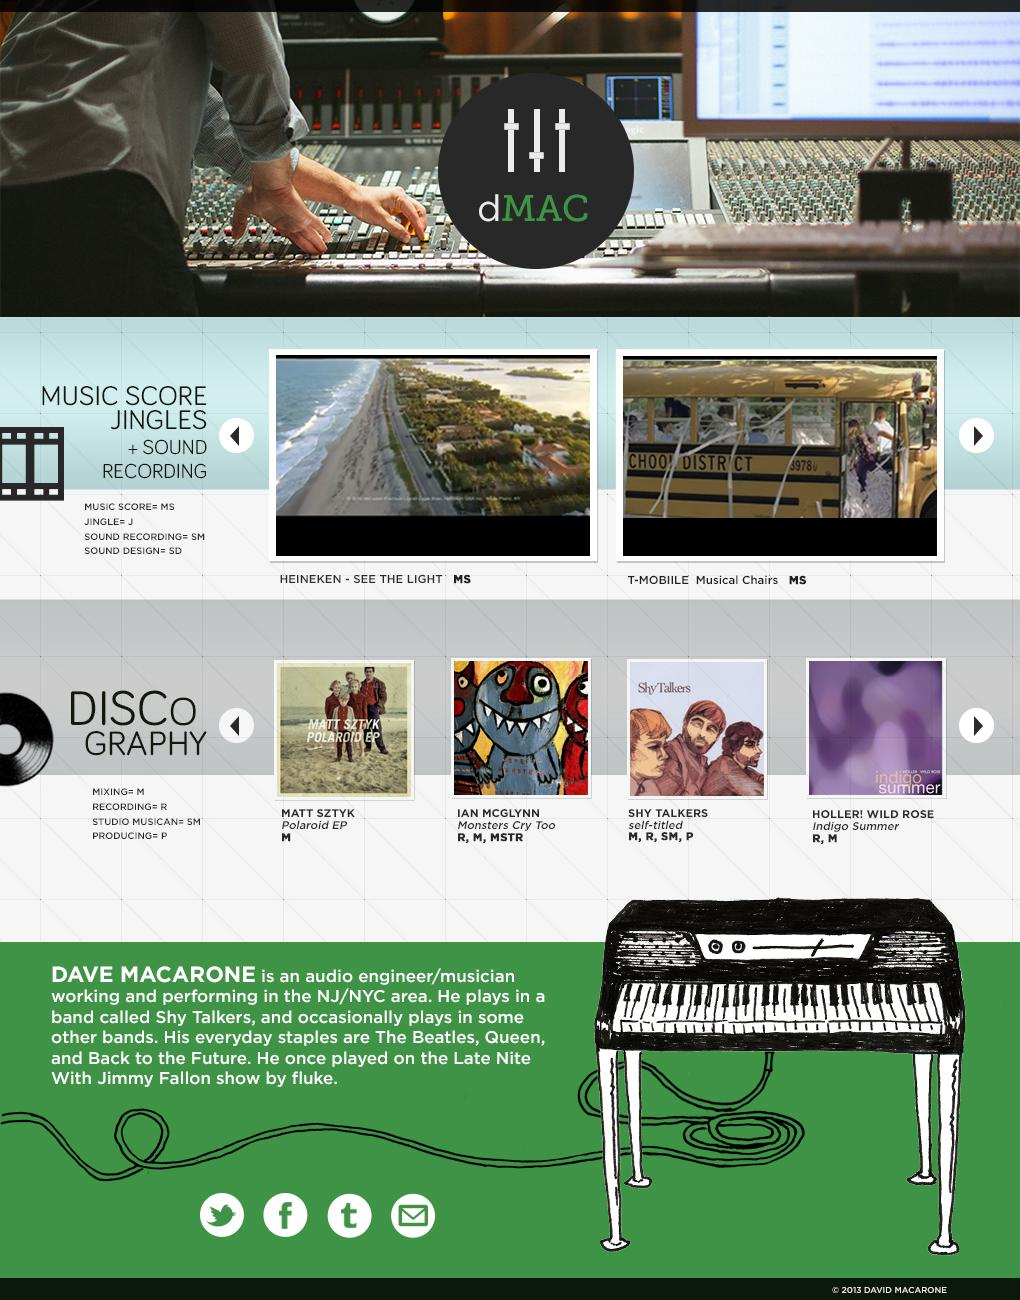 UPDATED: A Recording Engineer's Website - image 3 - student project